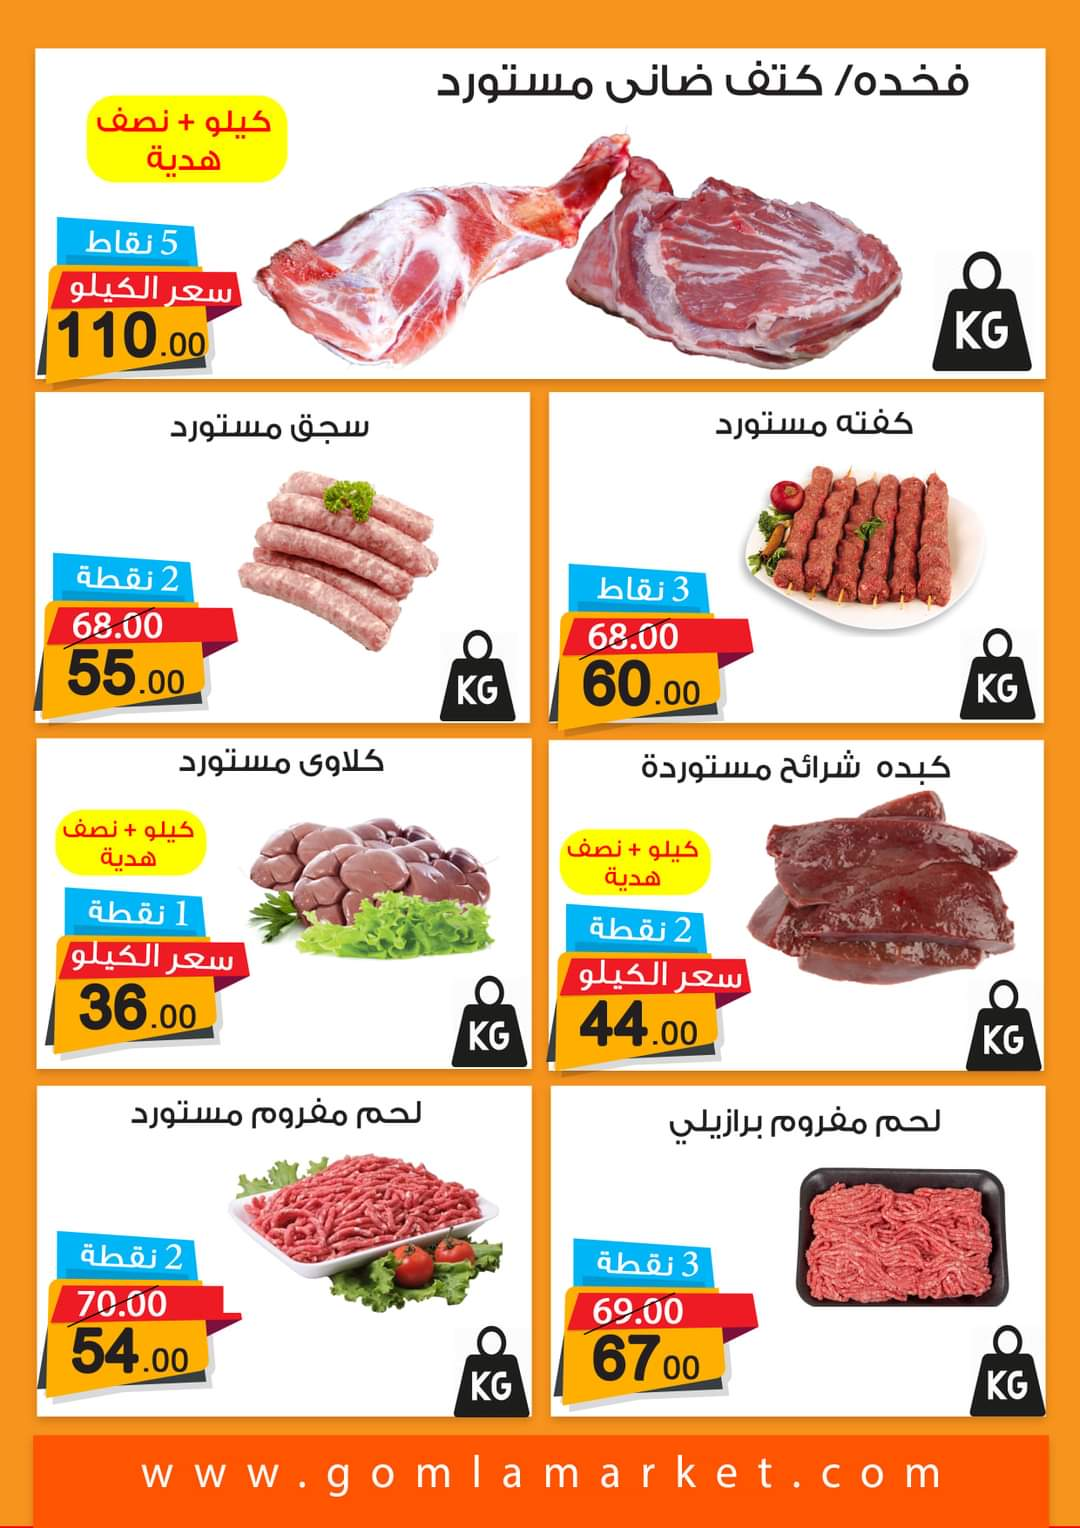 Wholesale Market offers and discounts on fresh meat products